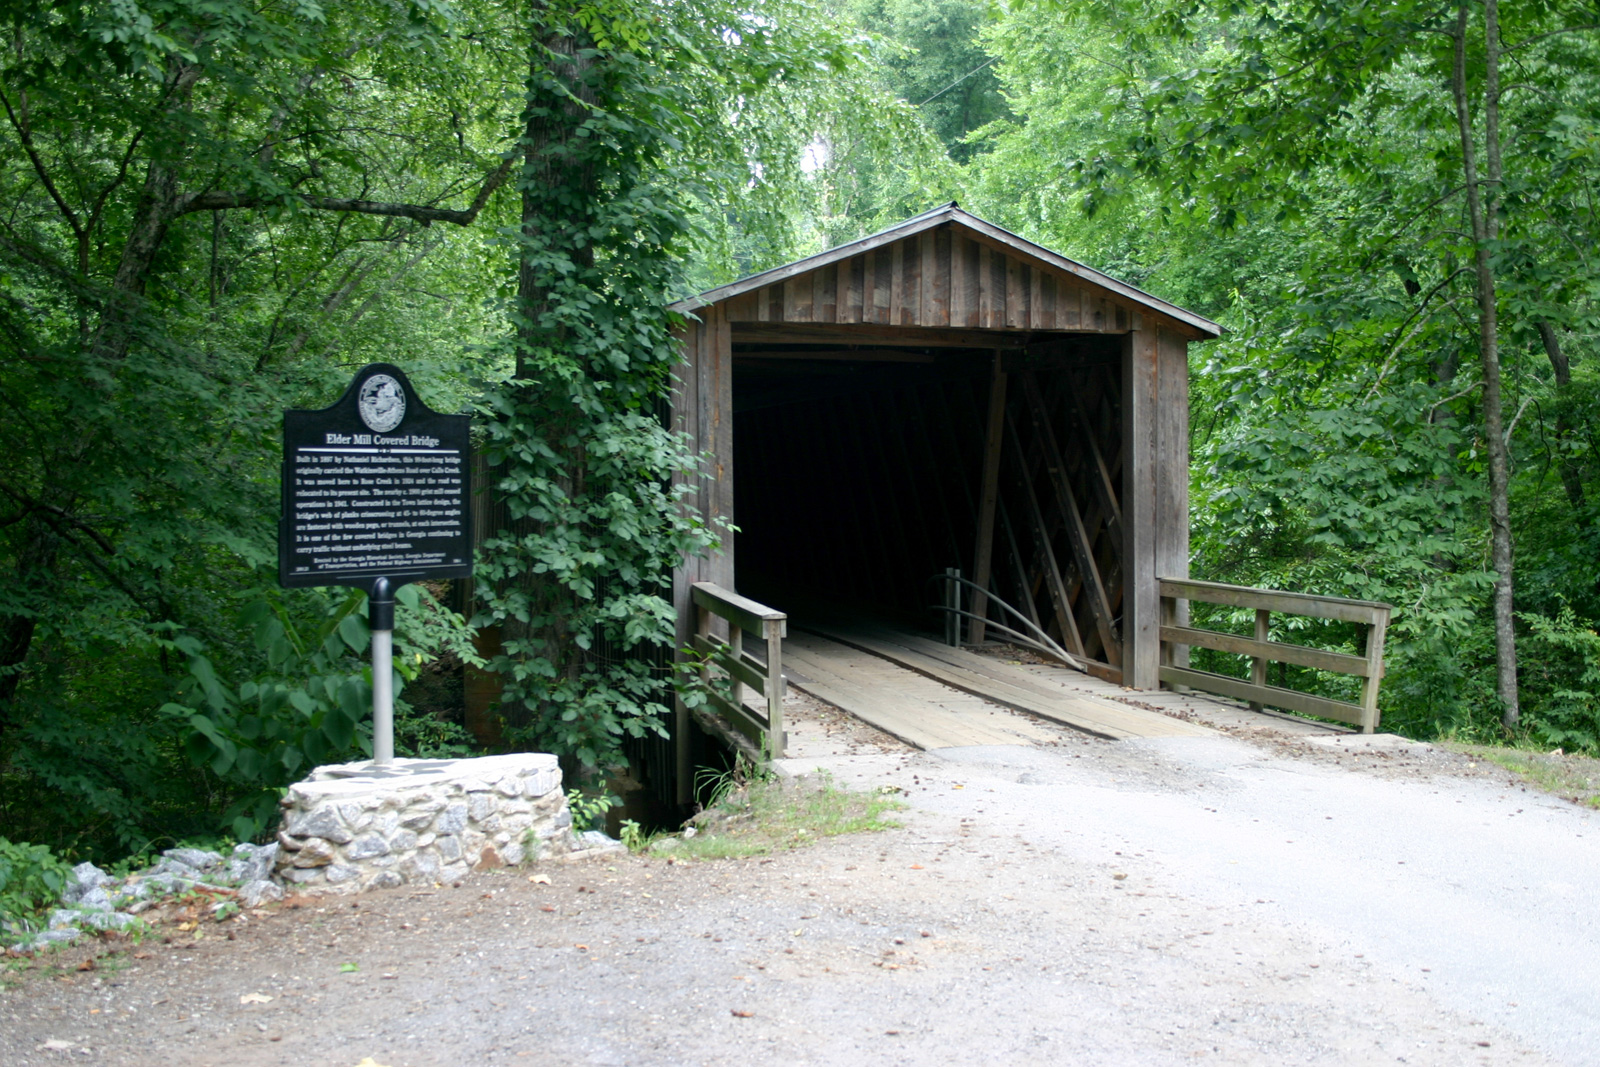 Built in 1897, Elder Mill Covered Bridge in Watkinsville is one of only 13 functional covered bridges left in Georgia.